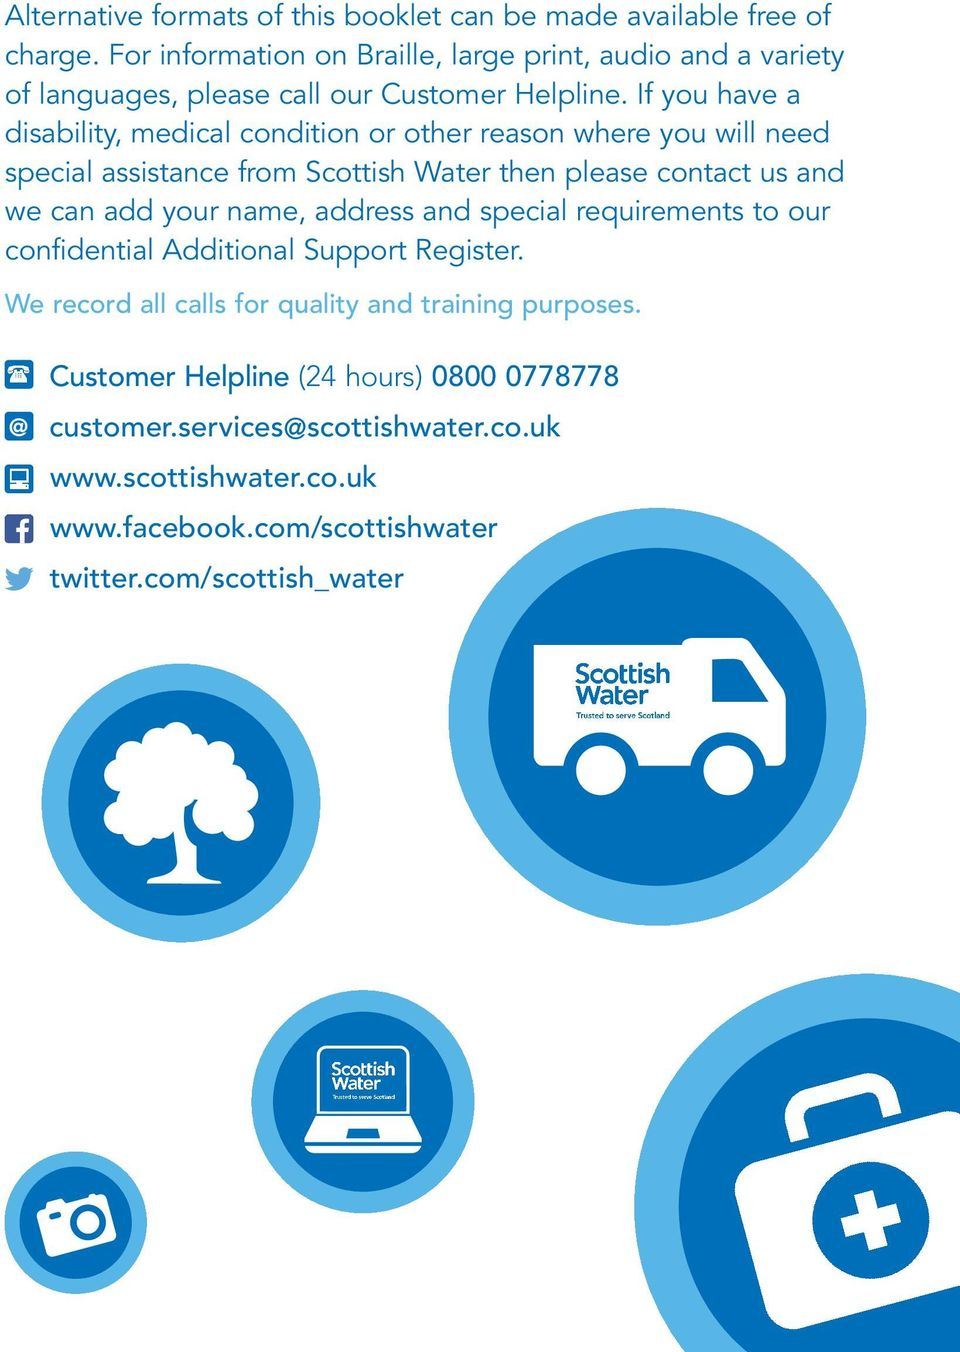 If you have a disability, medical condition or other reason where you will need special assistance from Scottish Water then please contact us and we can add your